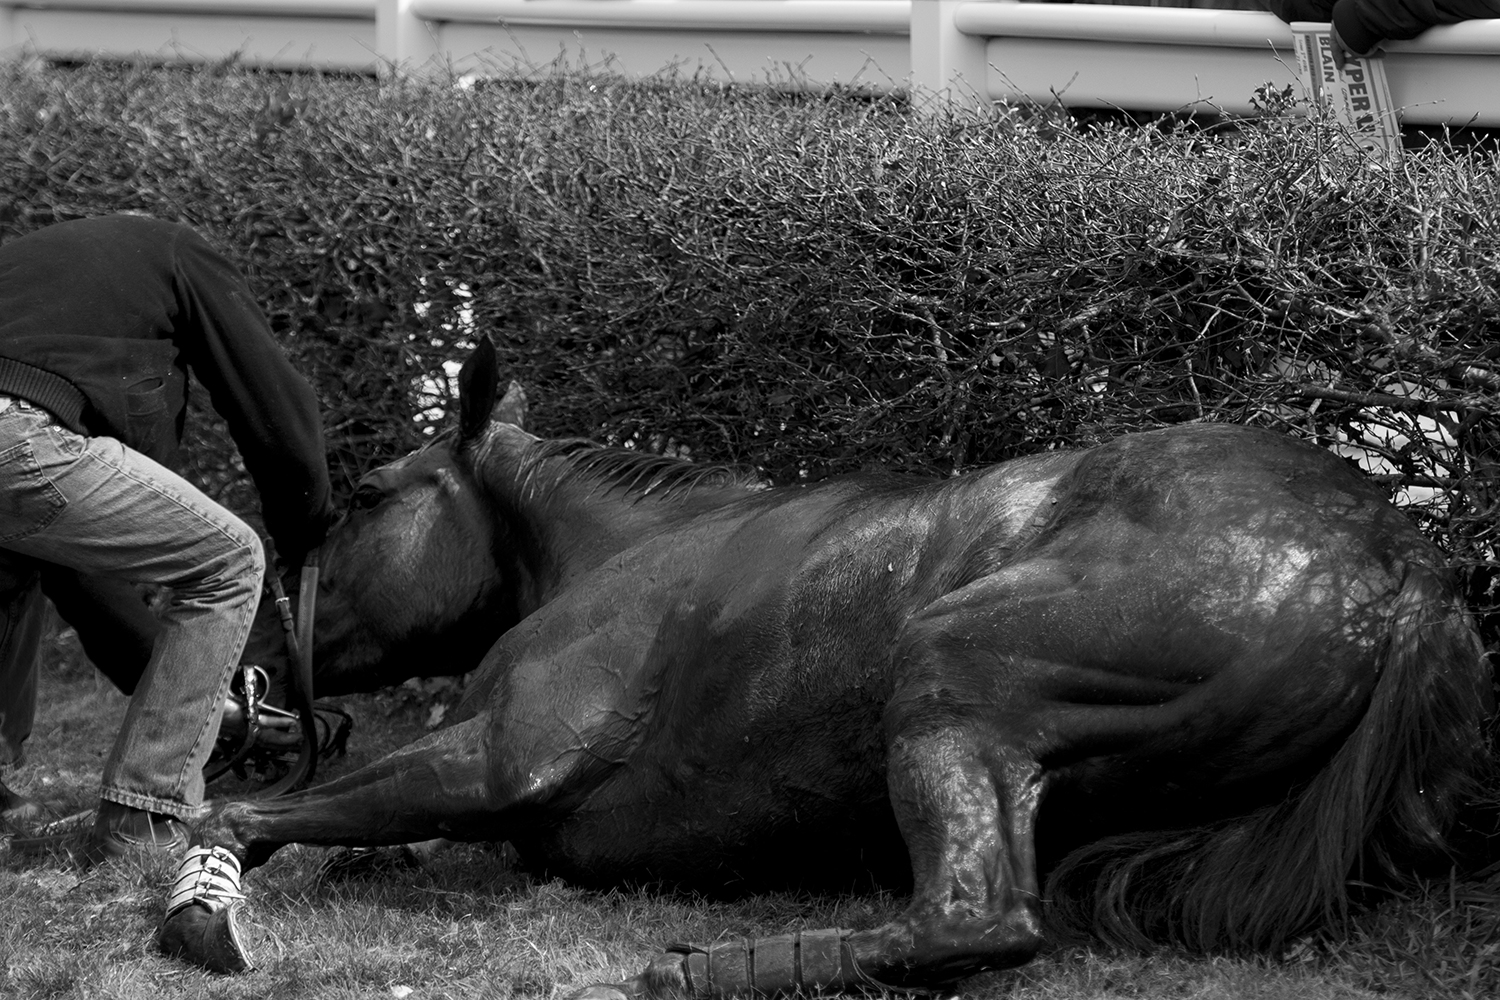 Injured horse being attended by a veterinarian after collapsing.